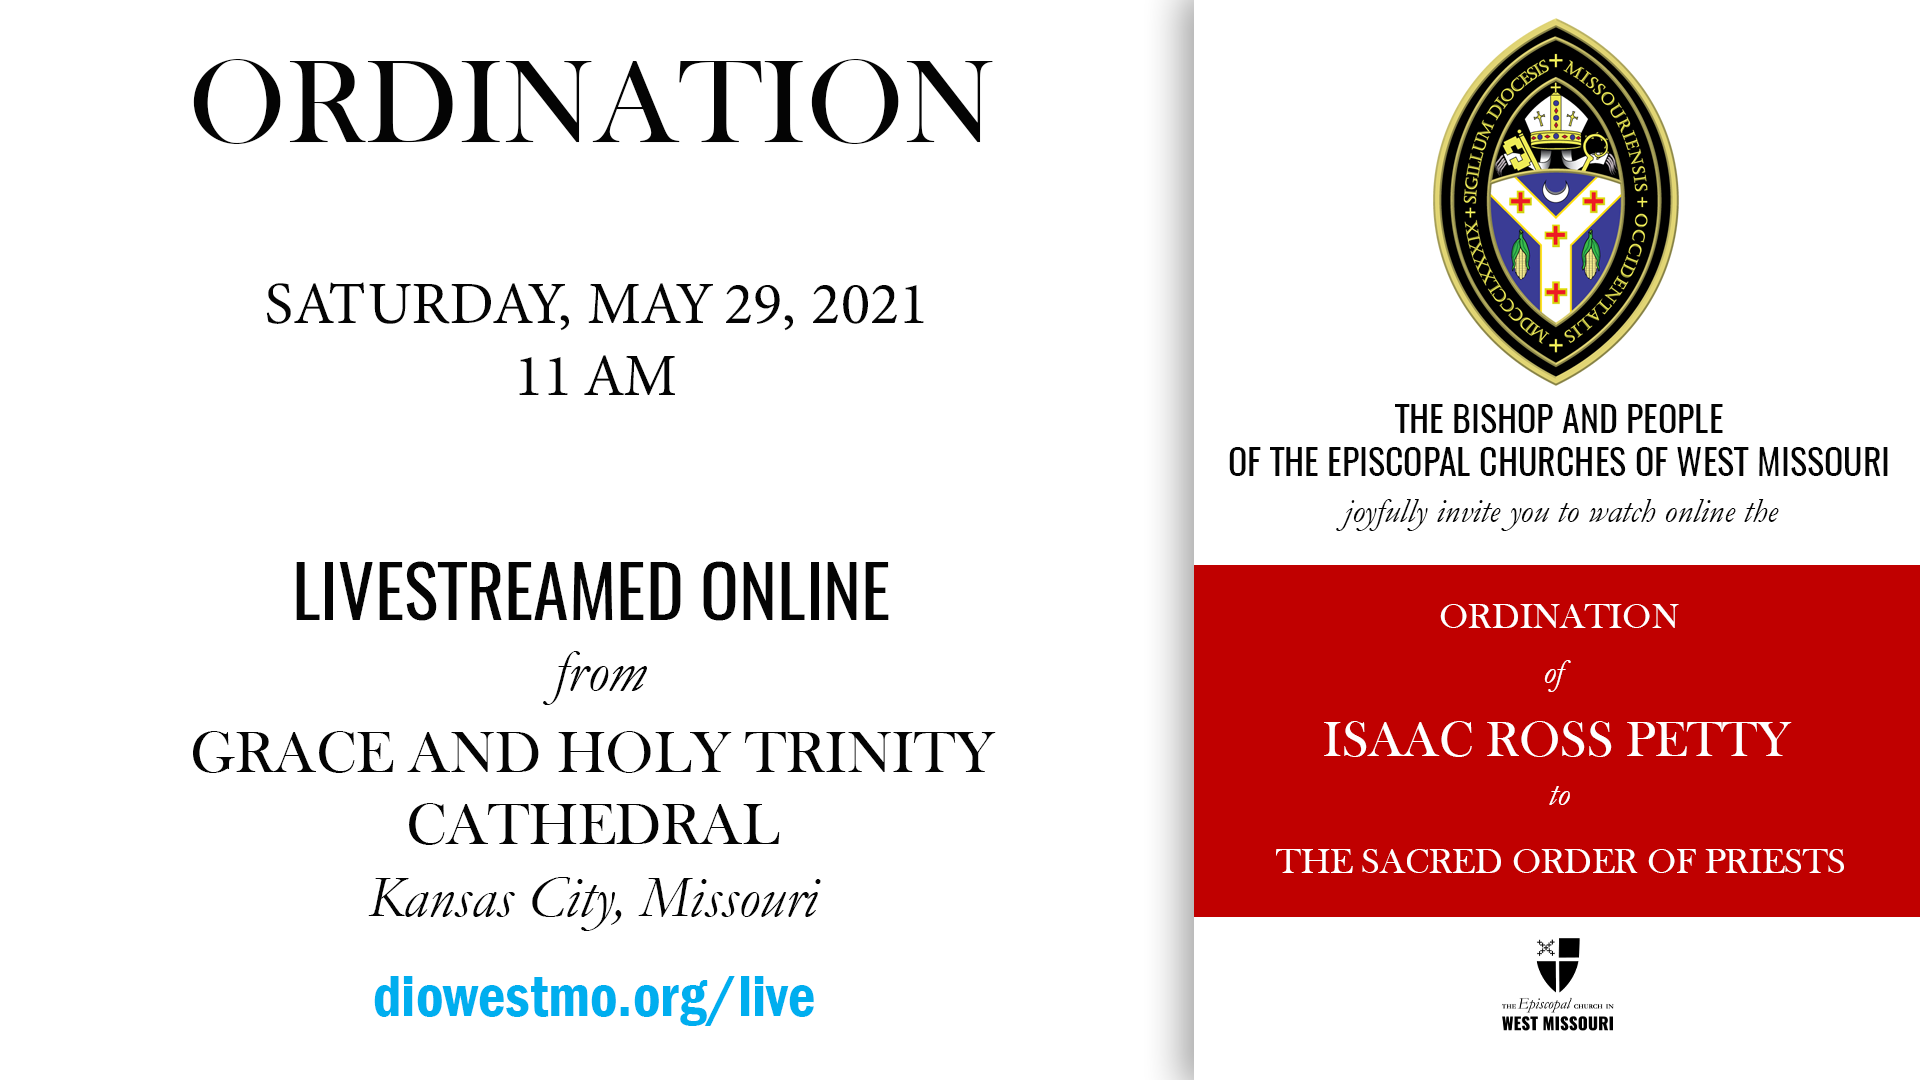 Ordination of Isaac Ross Petty to The Sacred Order of Priests